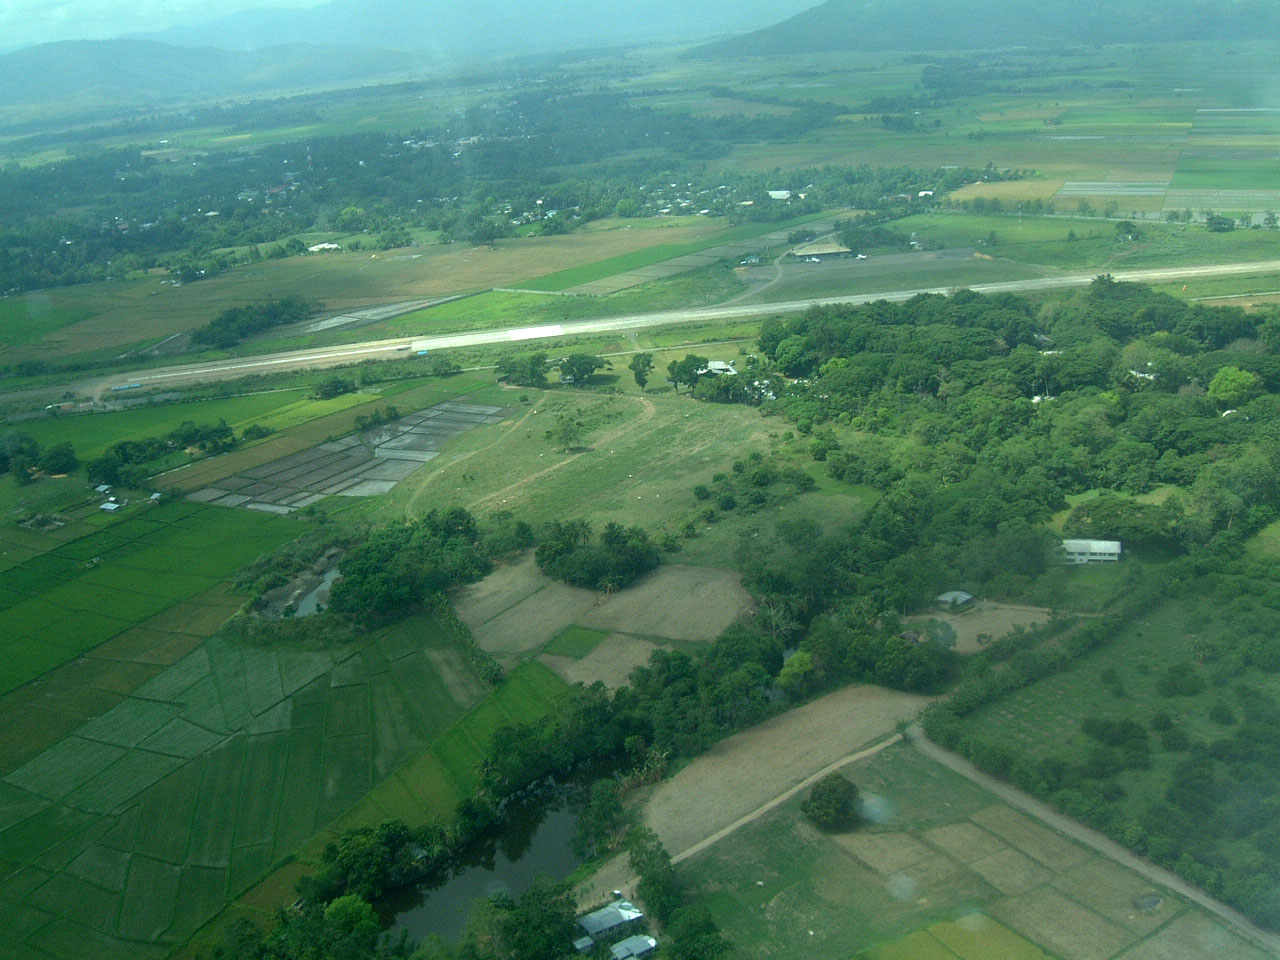 Bagabag Philippines  City pictures : Philippine Airports Luzon Bagabag Airport 200303 02